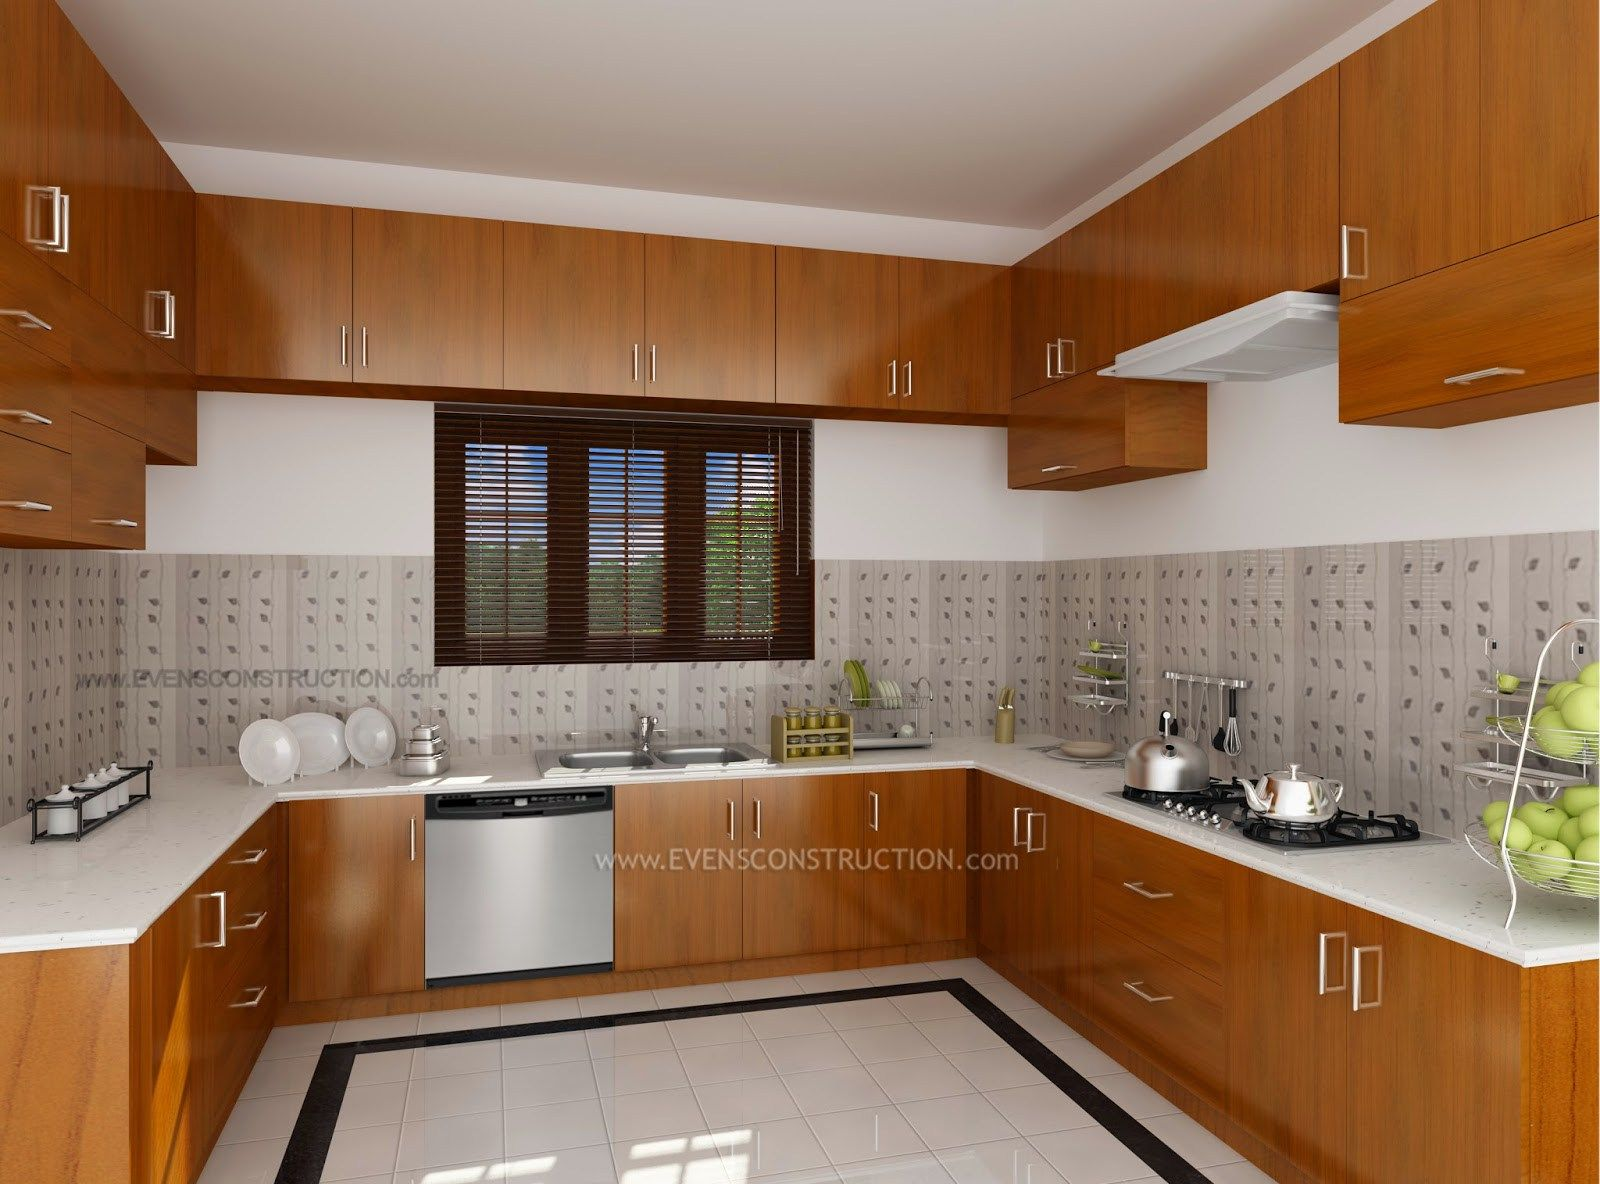 Design interior kitchen home kerala modern house